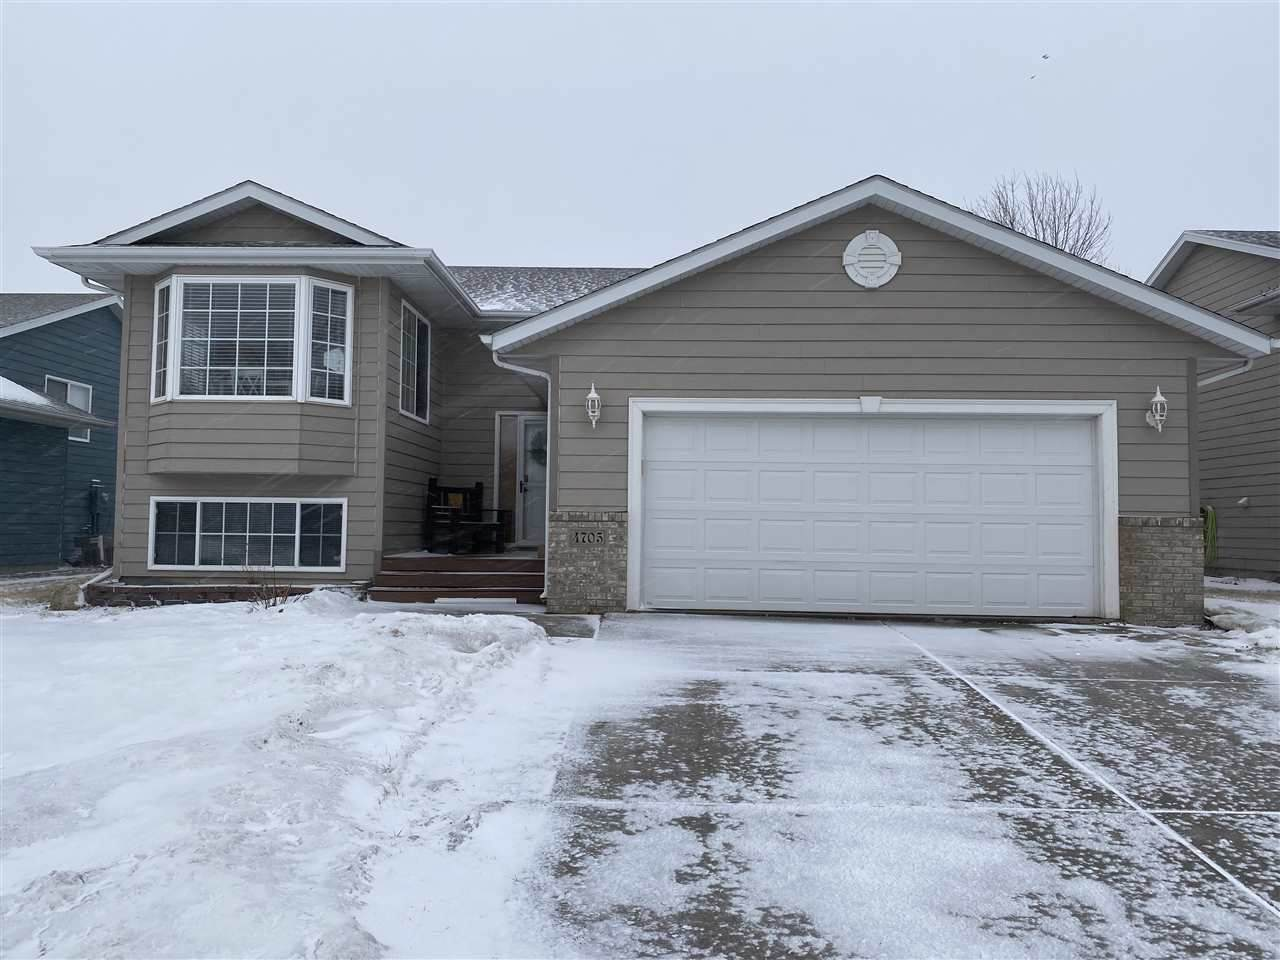 4705 Equity Dr - Photo 1